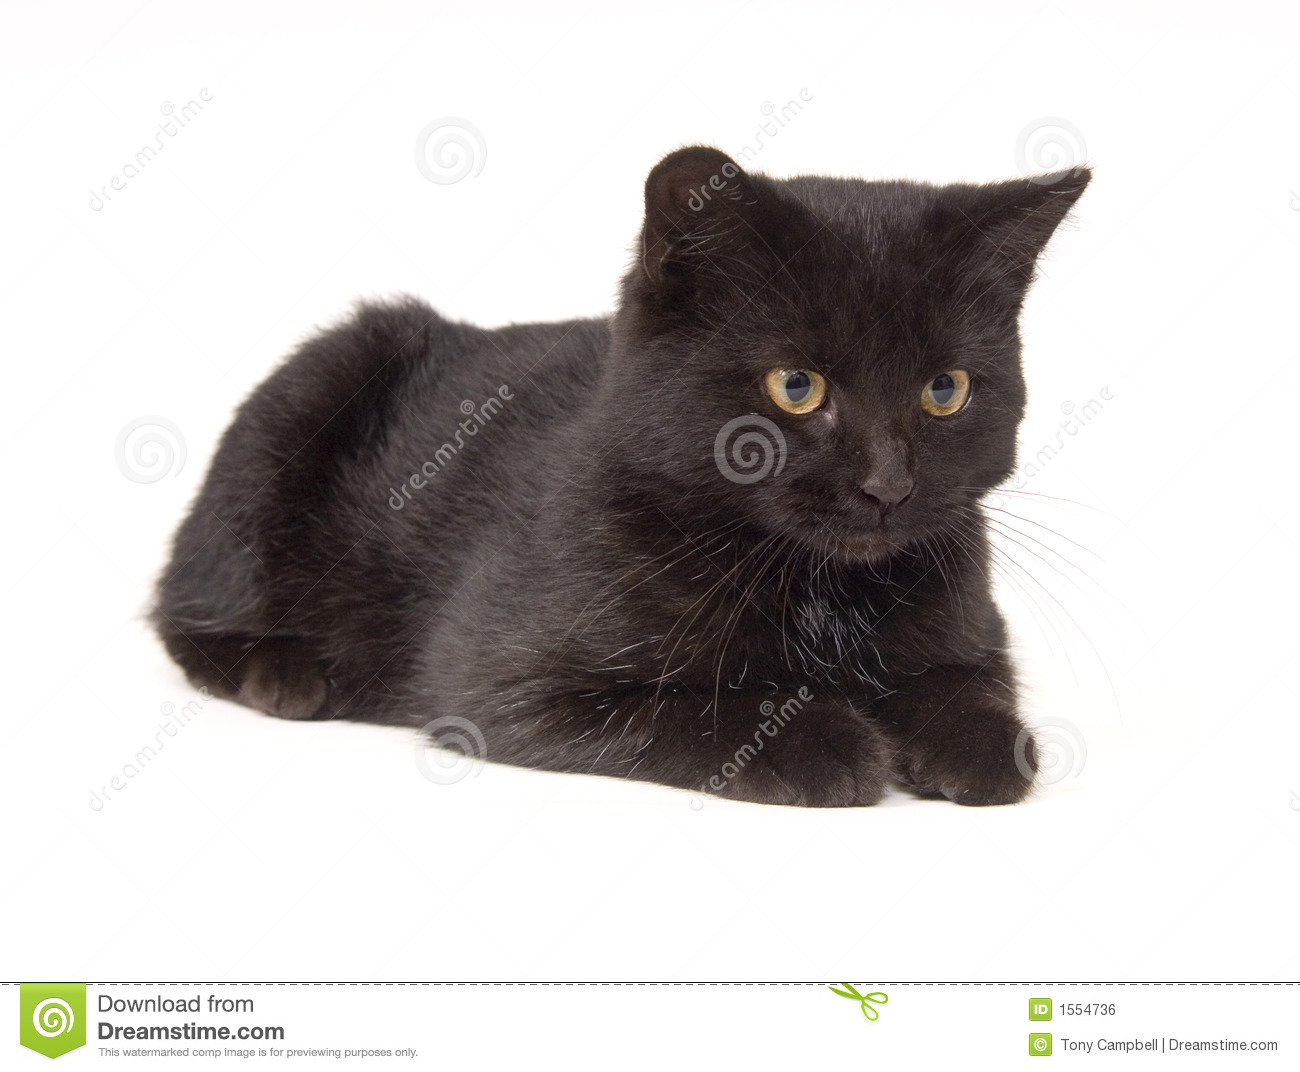 how long does the average cat live